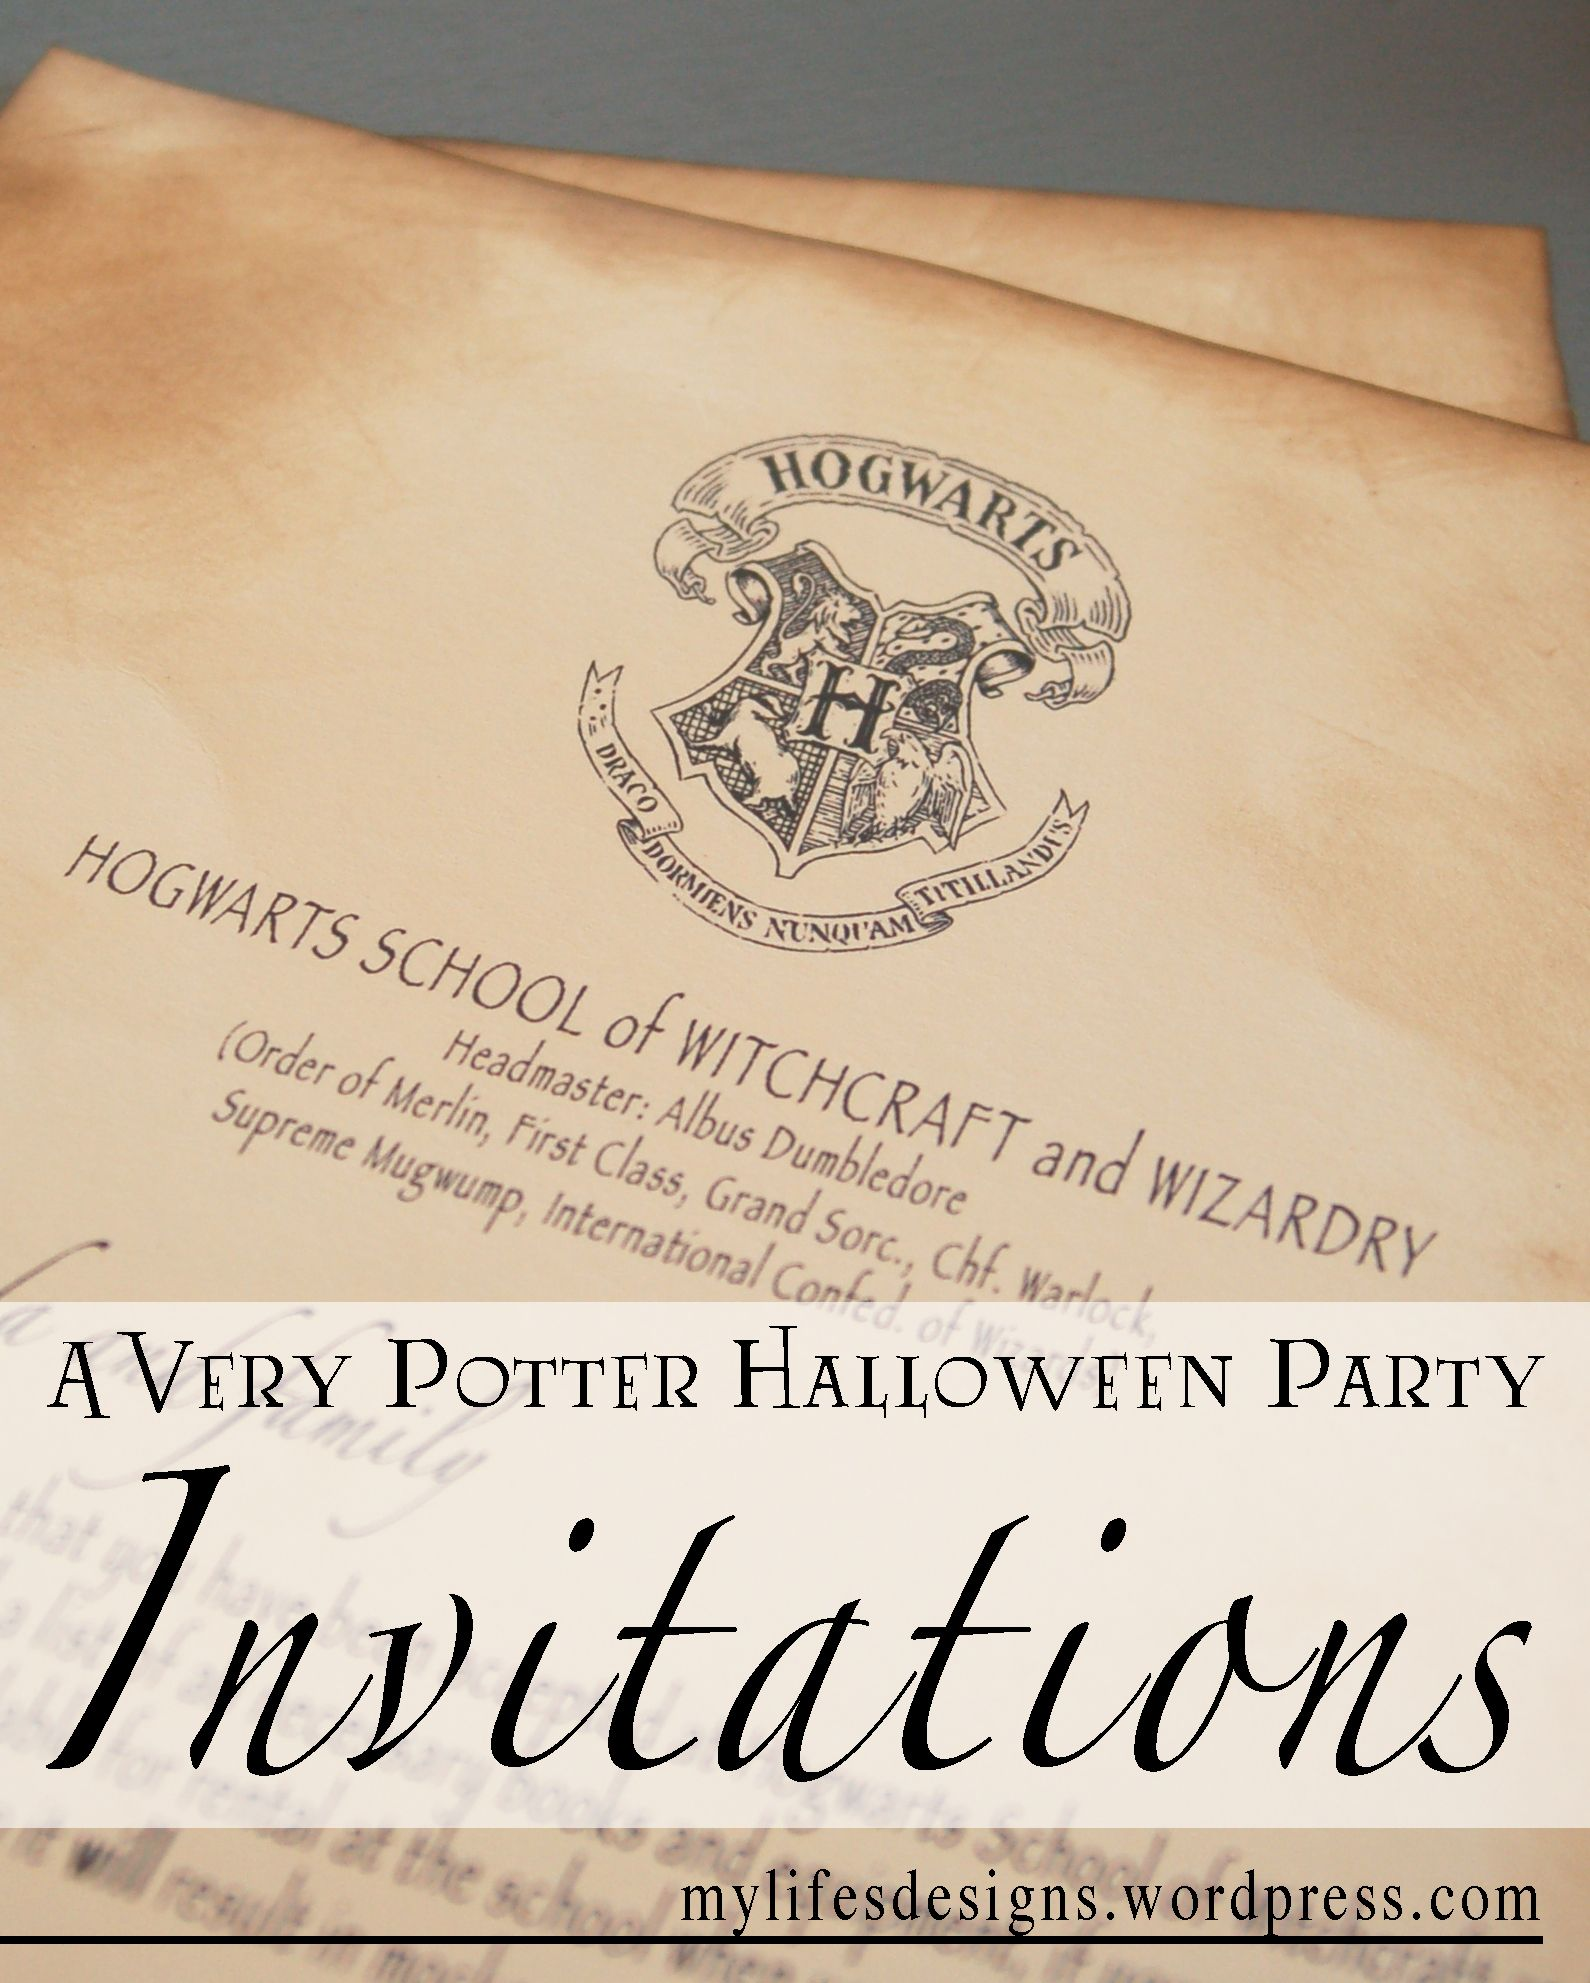 Free Downloads To Create Your Own Harry Potter Party Invitations Or  Acceptance Letter!  Create Invitations Online Free No Download